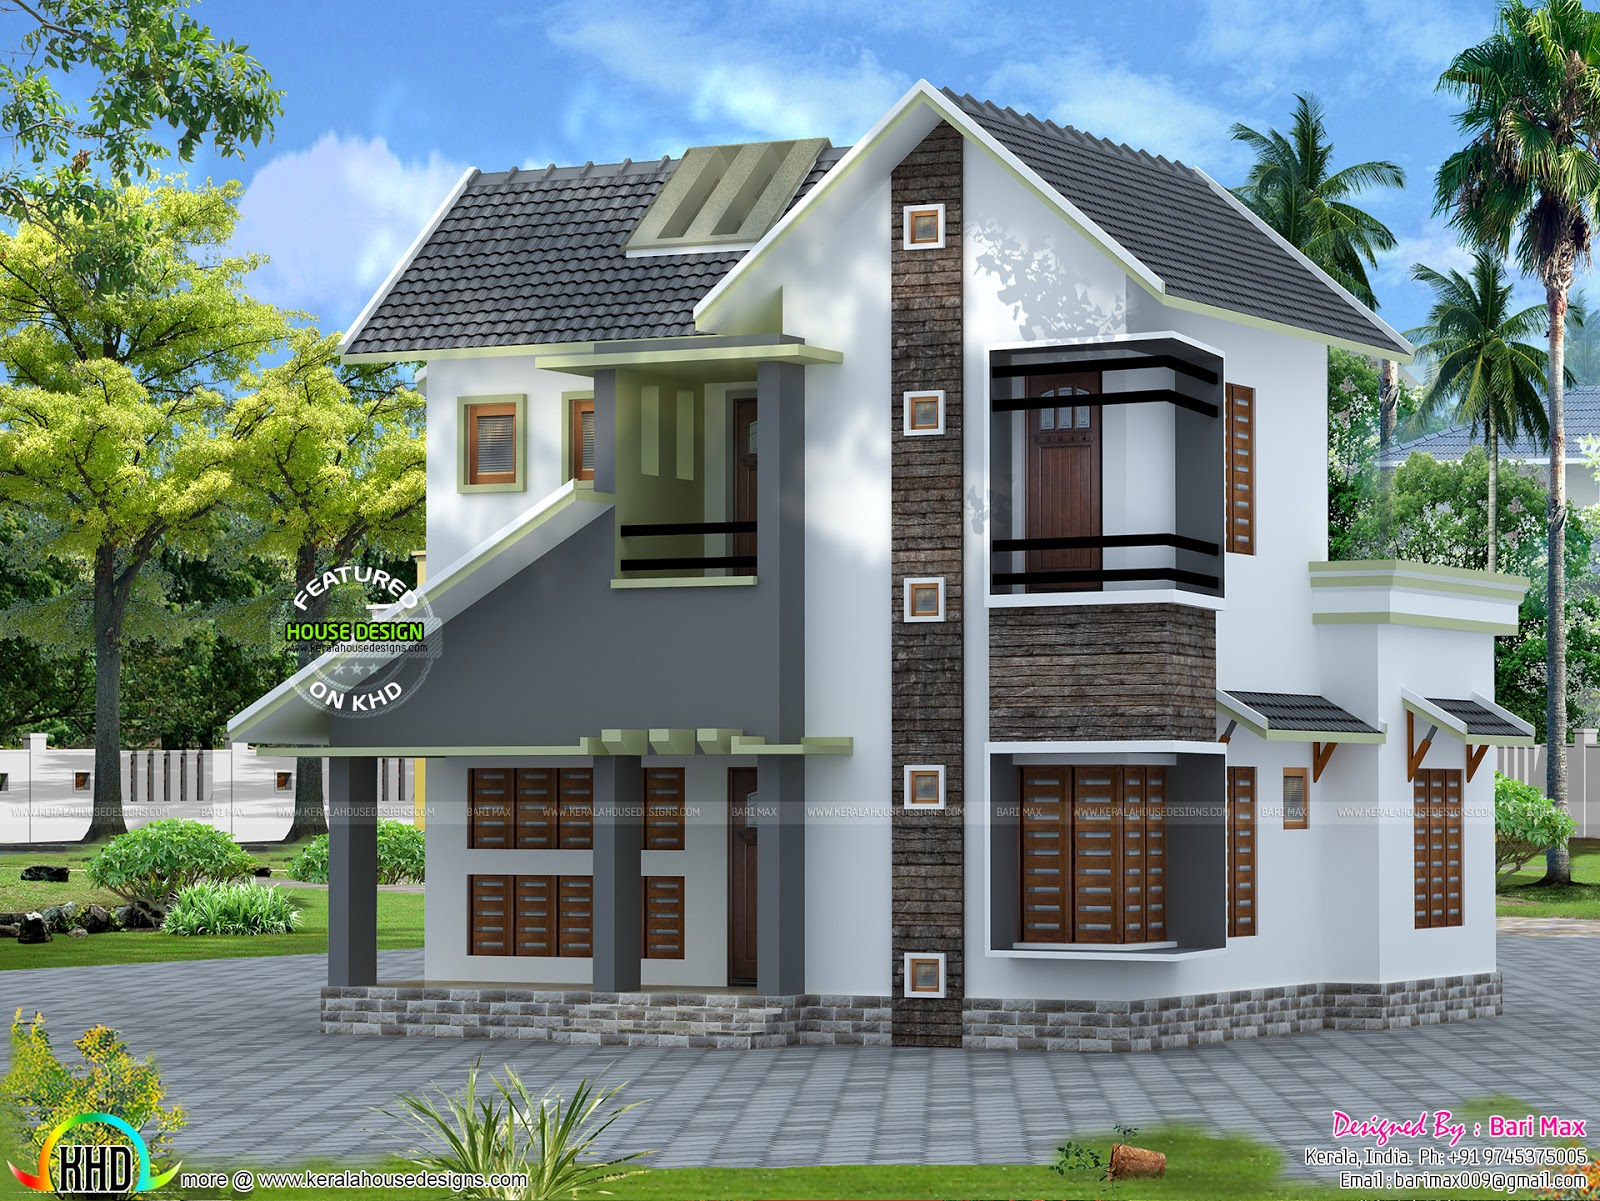 Slope roof low cost home design kerala home design and for Low pitch roof house plans